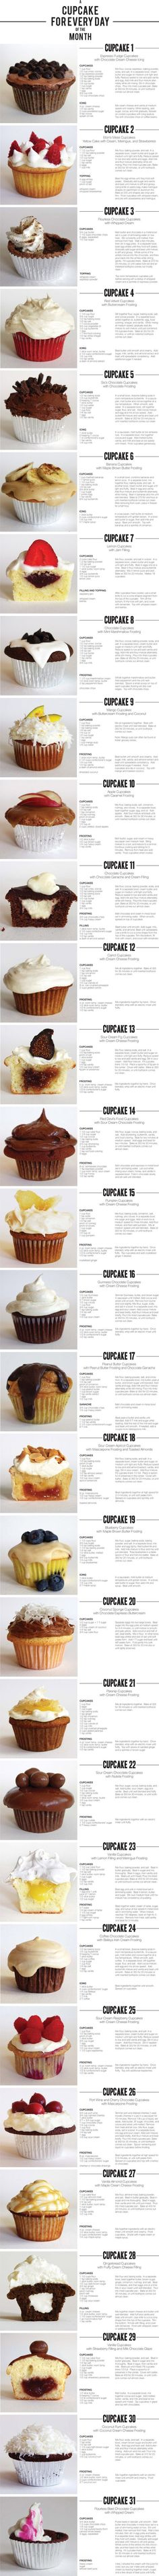 31 different cupcakes for entertaining